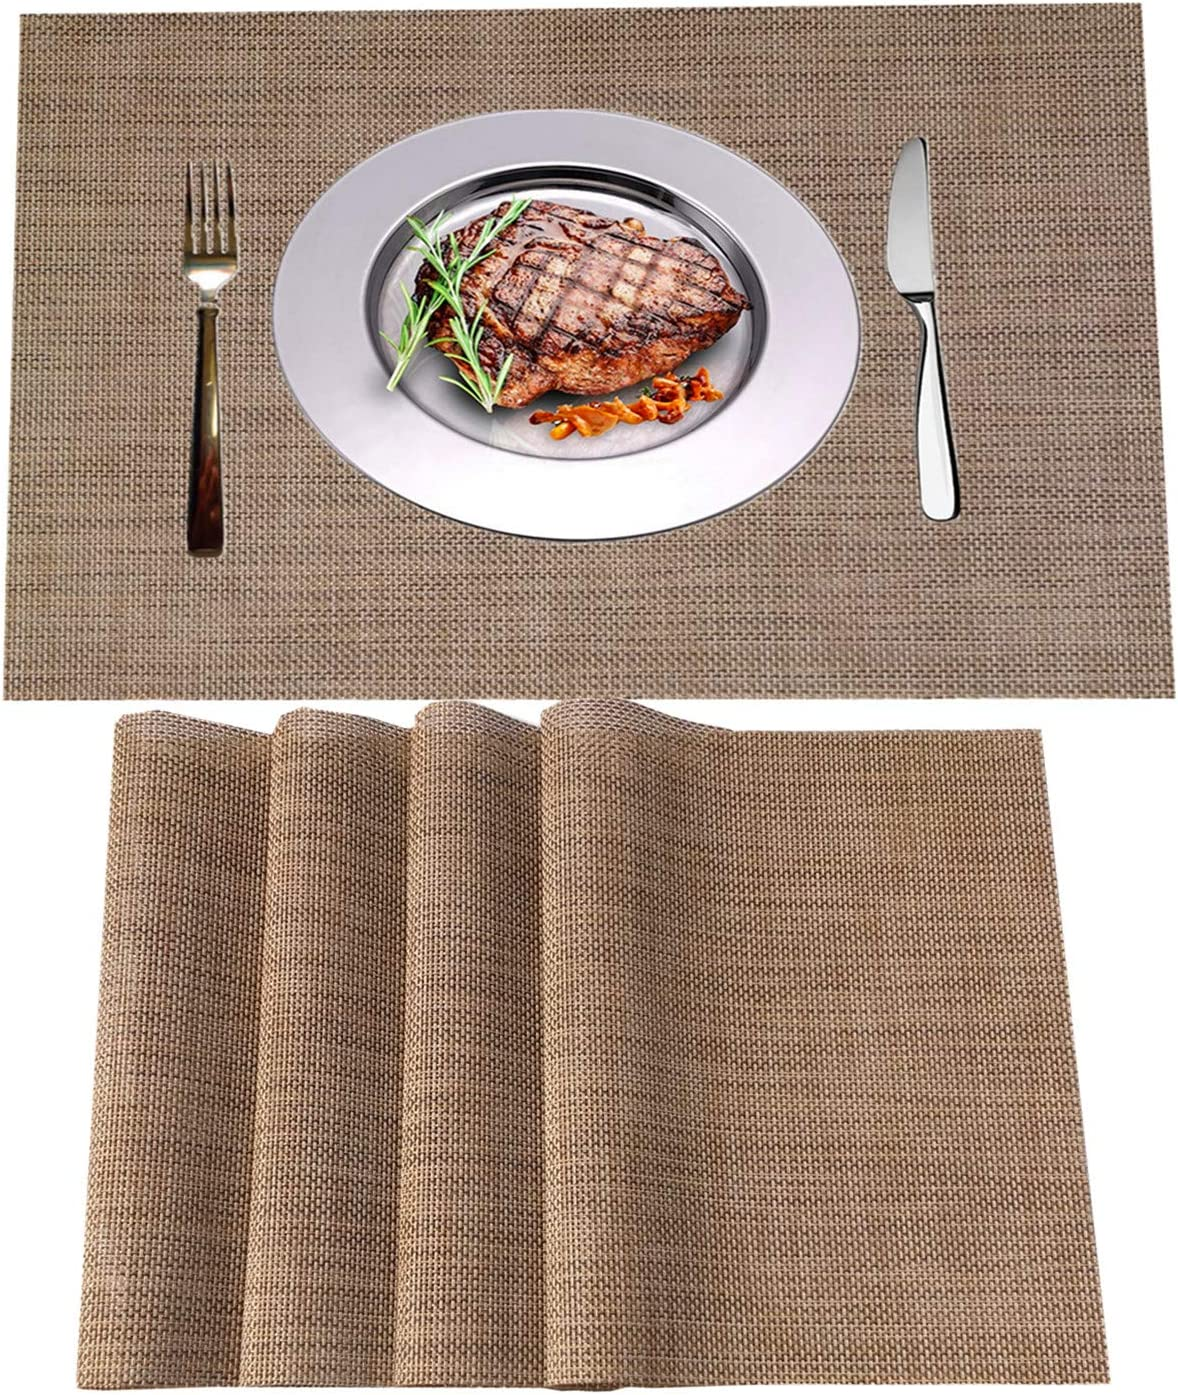 WANGCHAO Placemats Set of 8 Heat Insulation Stain Resistant Placemat for Dining Table Durable Crossweave Woven Vinyl Kitchen Table Mats Placemat (Linen, Set of 8): Home & Kitchen